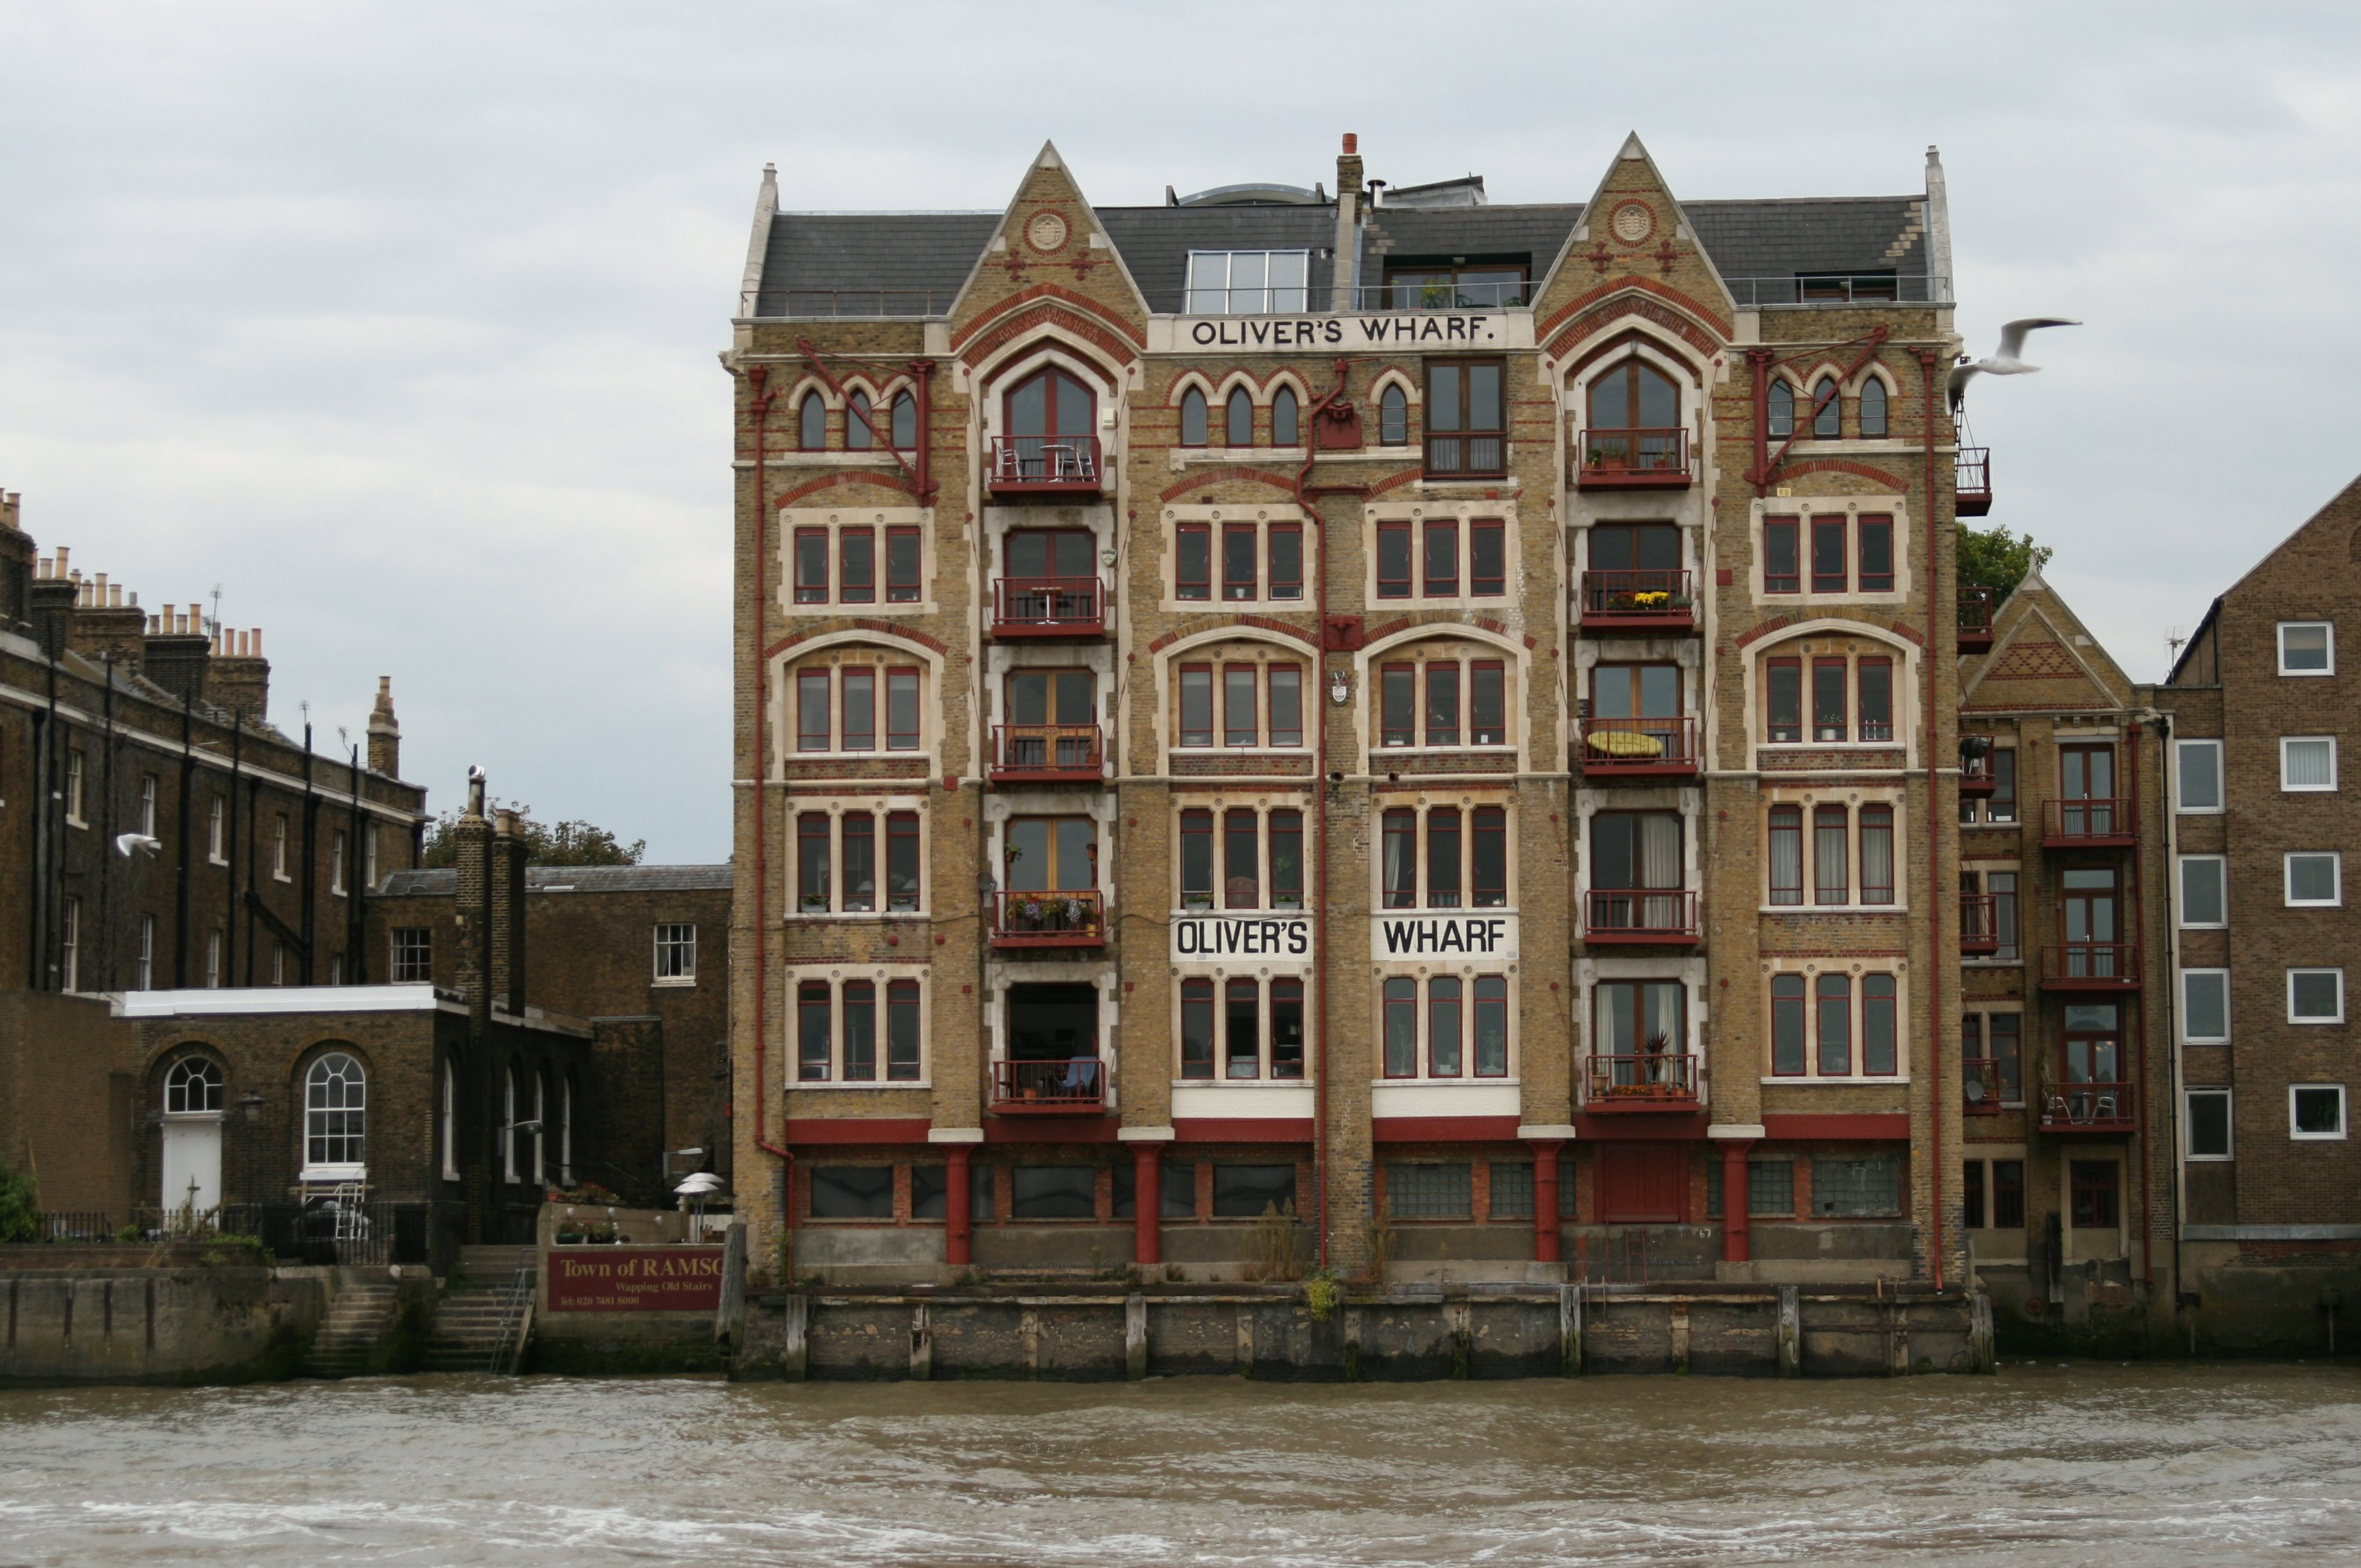 Olivers_Wharf,_64_Wapping_High_St,_London_E1W_2PJ,_17_September_2007